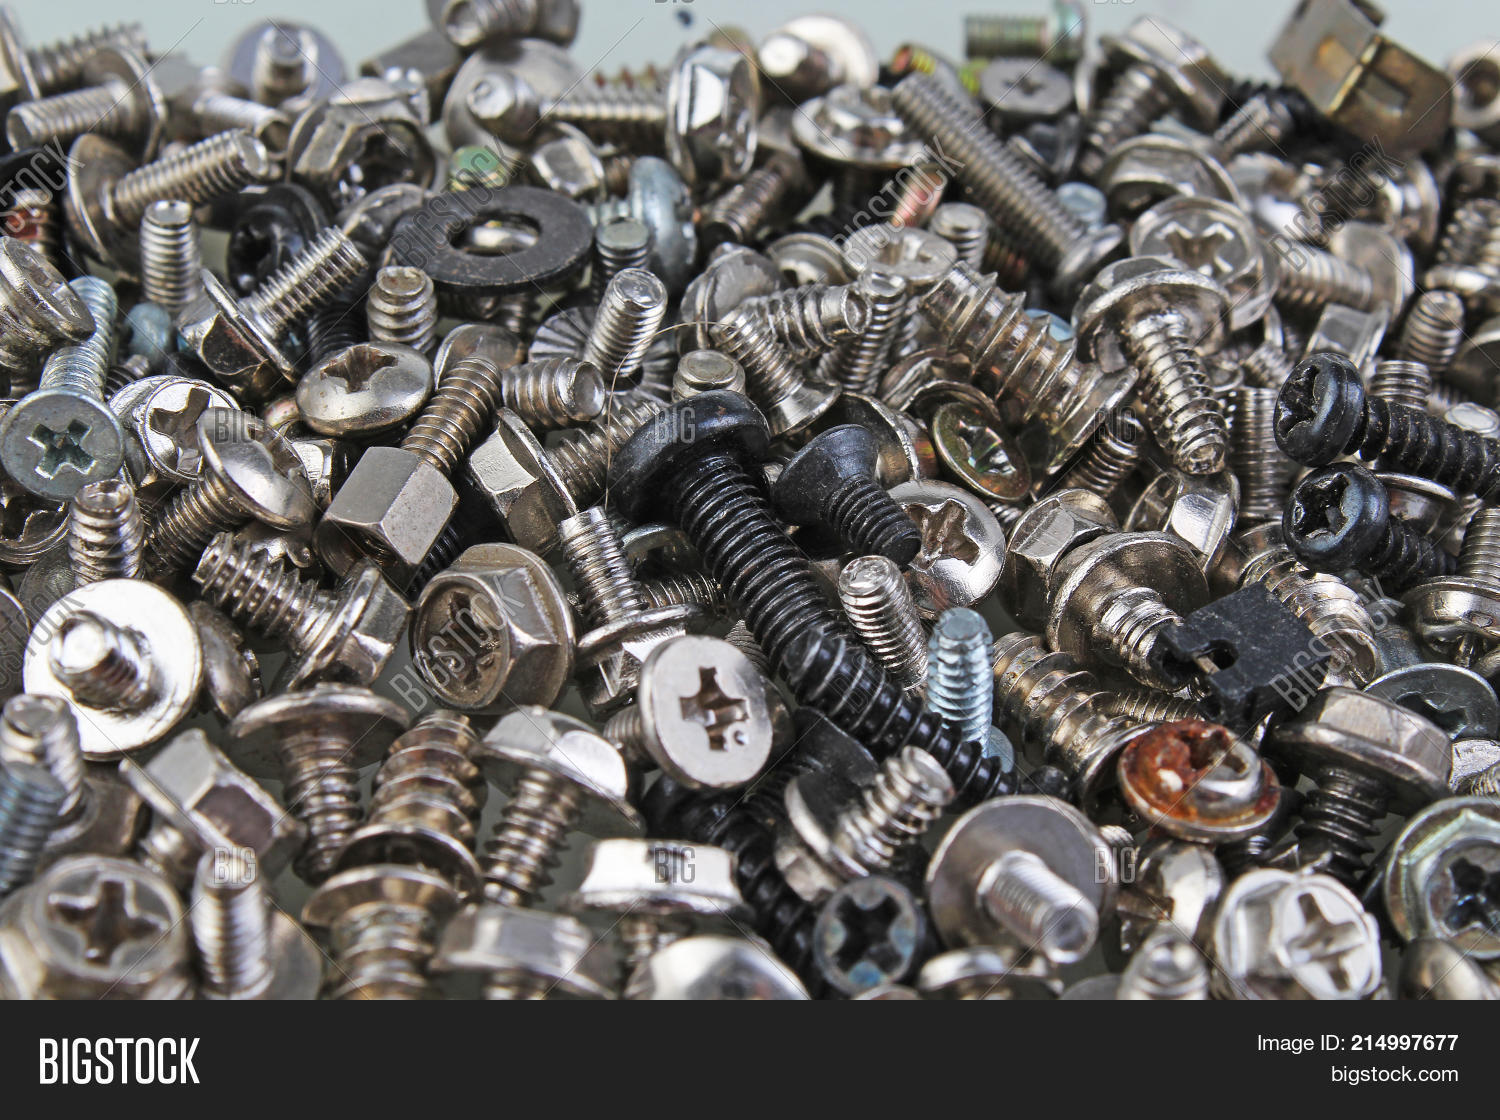 Nuts Bolts  Nuts Bolts Image & Photo (Free Trial)   Bigstock